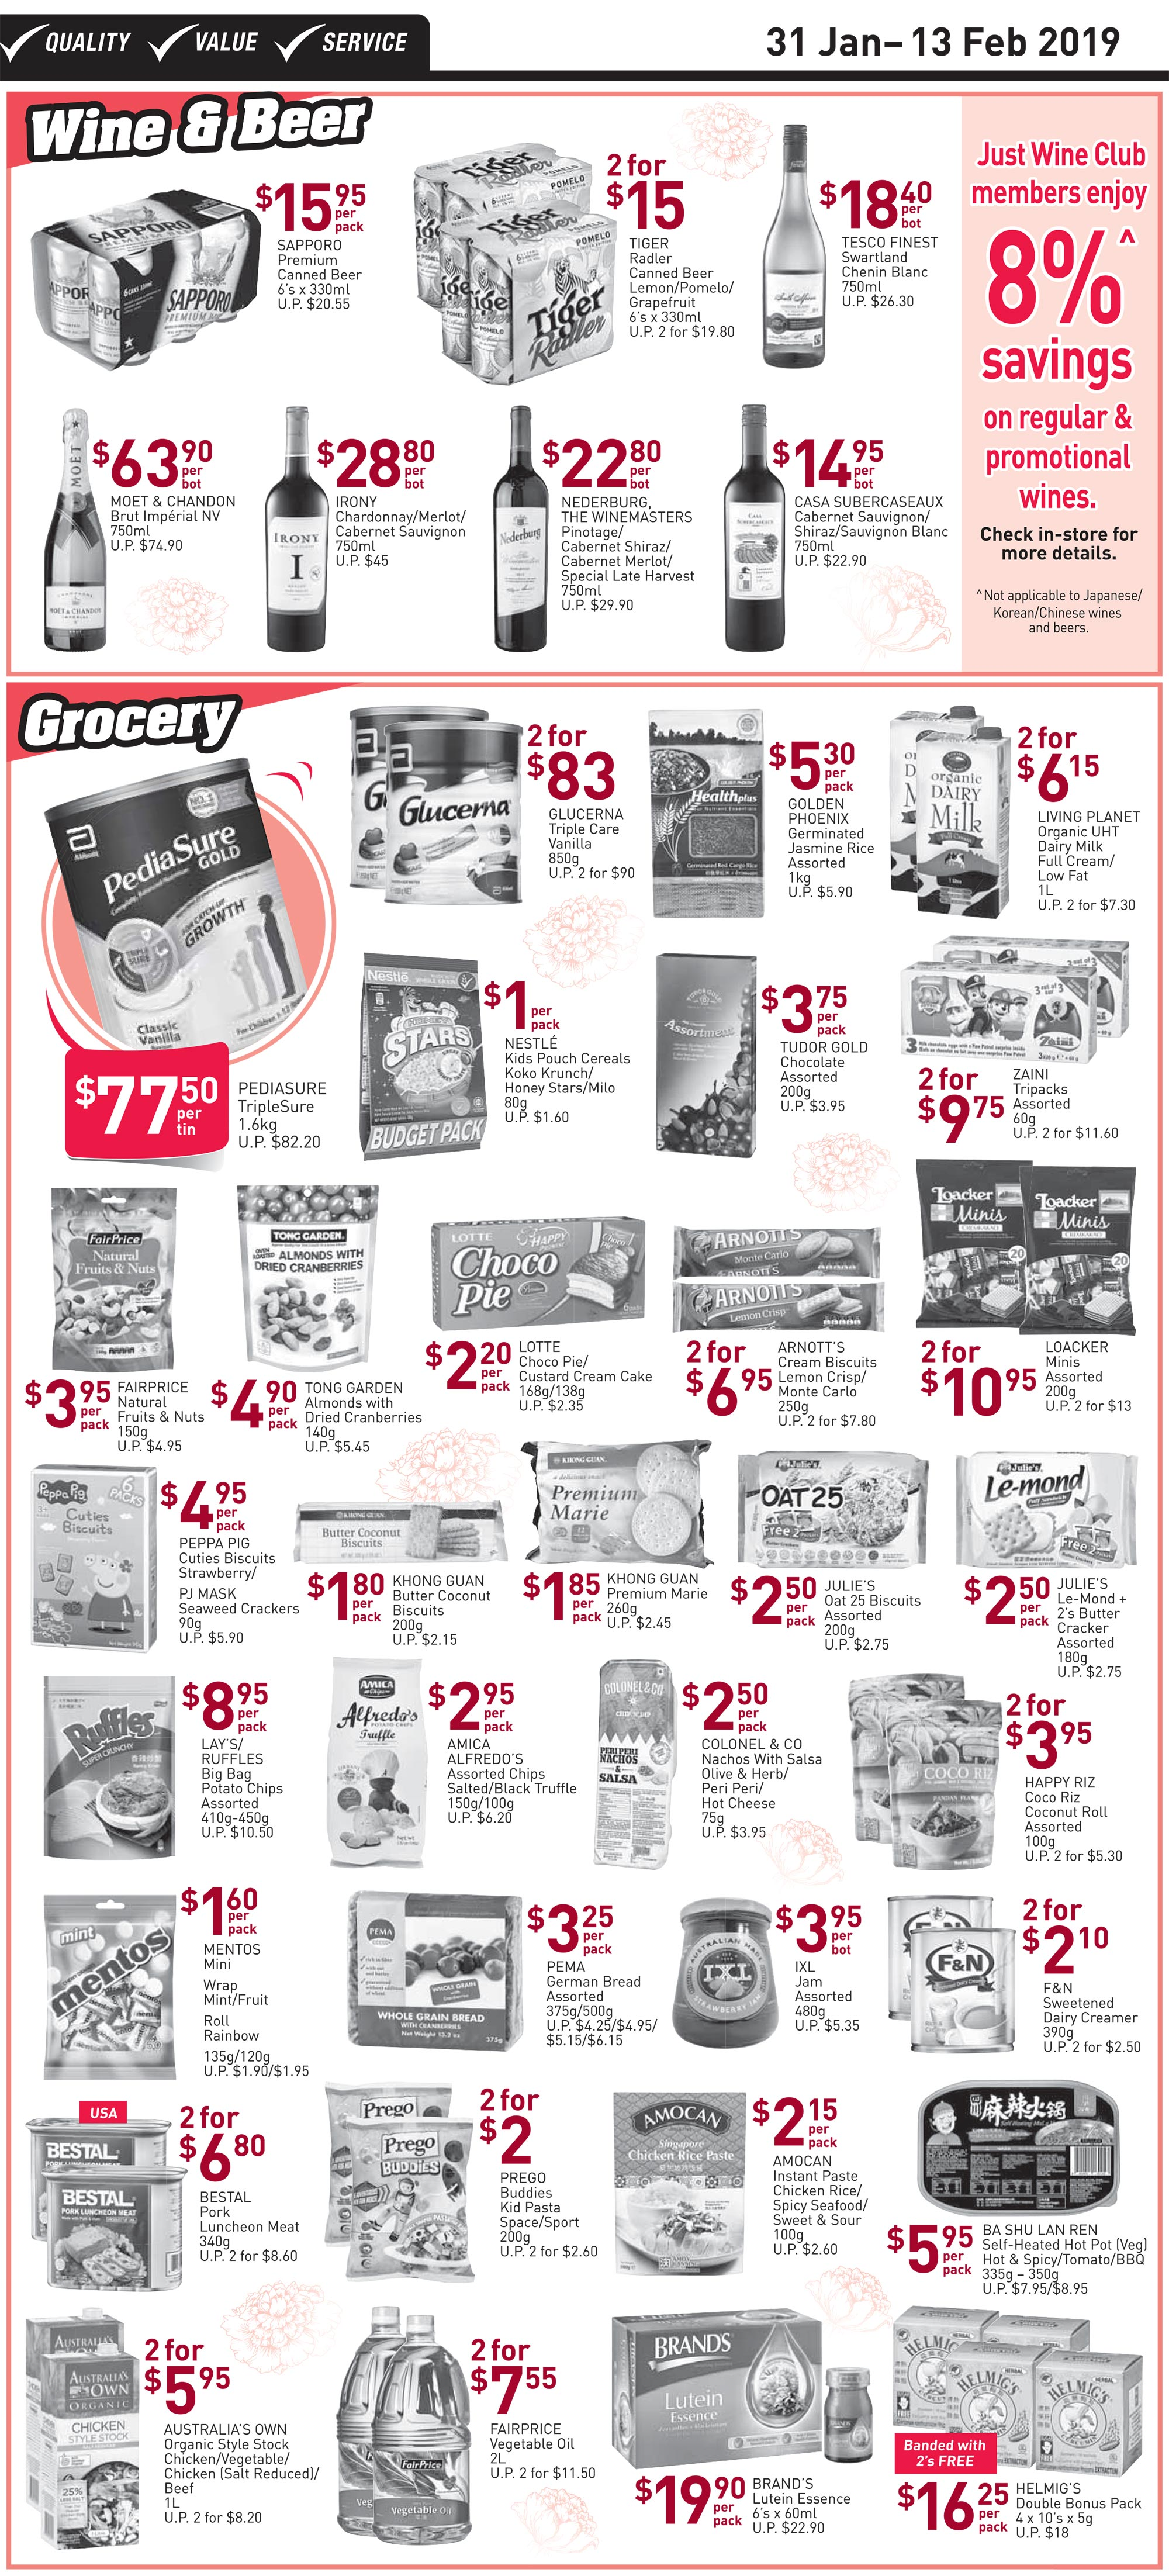 NTUC FairPrice Singapore Your Weekly Saver Promotion 31 Jan - 13 Feb 2019   Why Not Deals 4 & Promotions